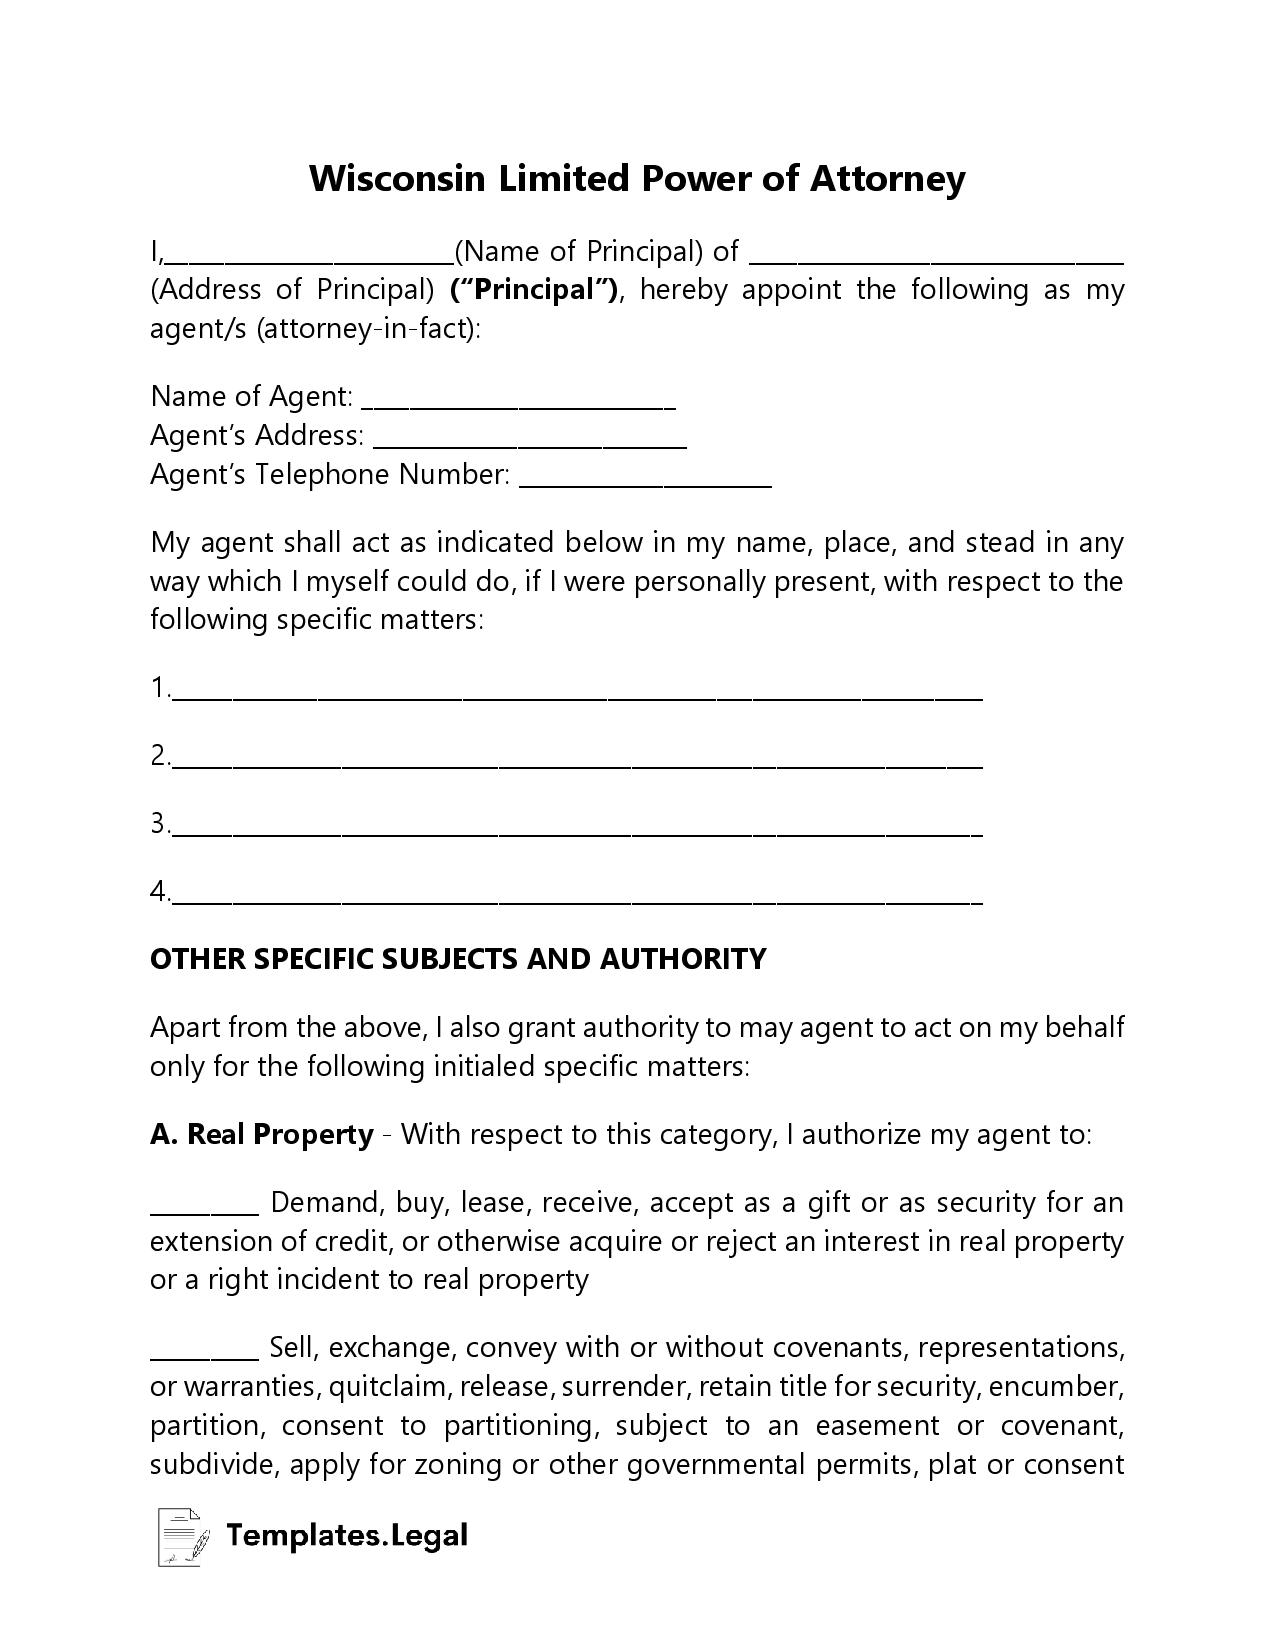 Wisconsin Limited Power of Attorney - Templates.Legal